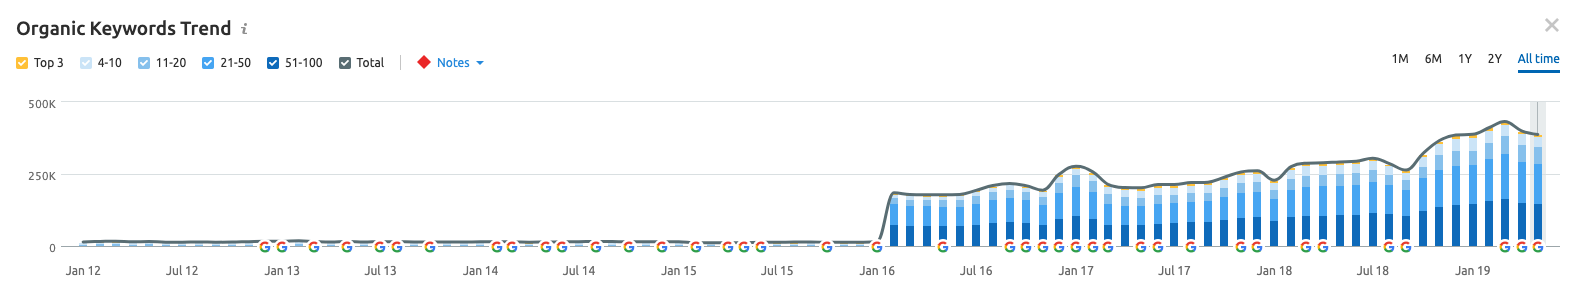 SEMRush ranking trend bar chart, showing ranking distribution over time with small Google algorithm update markers.